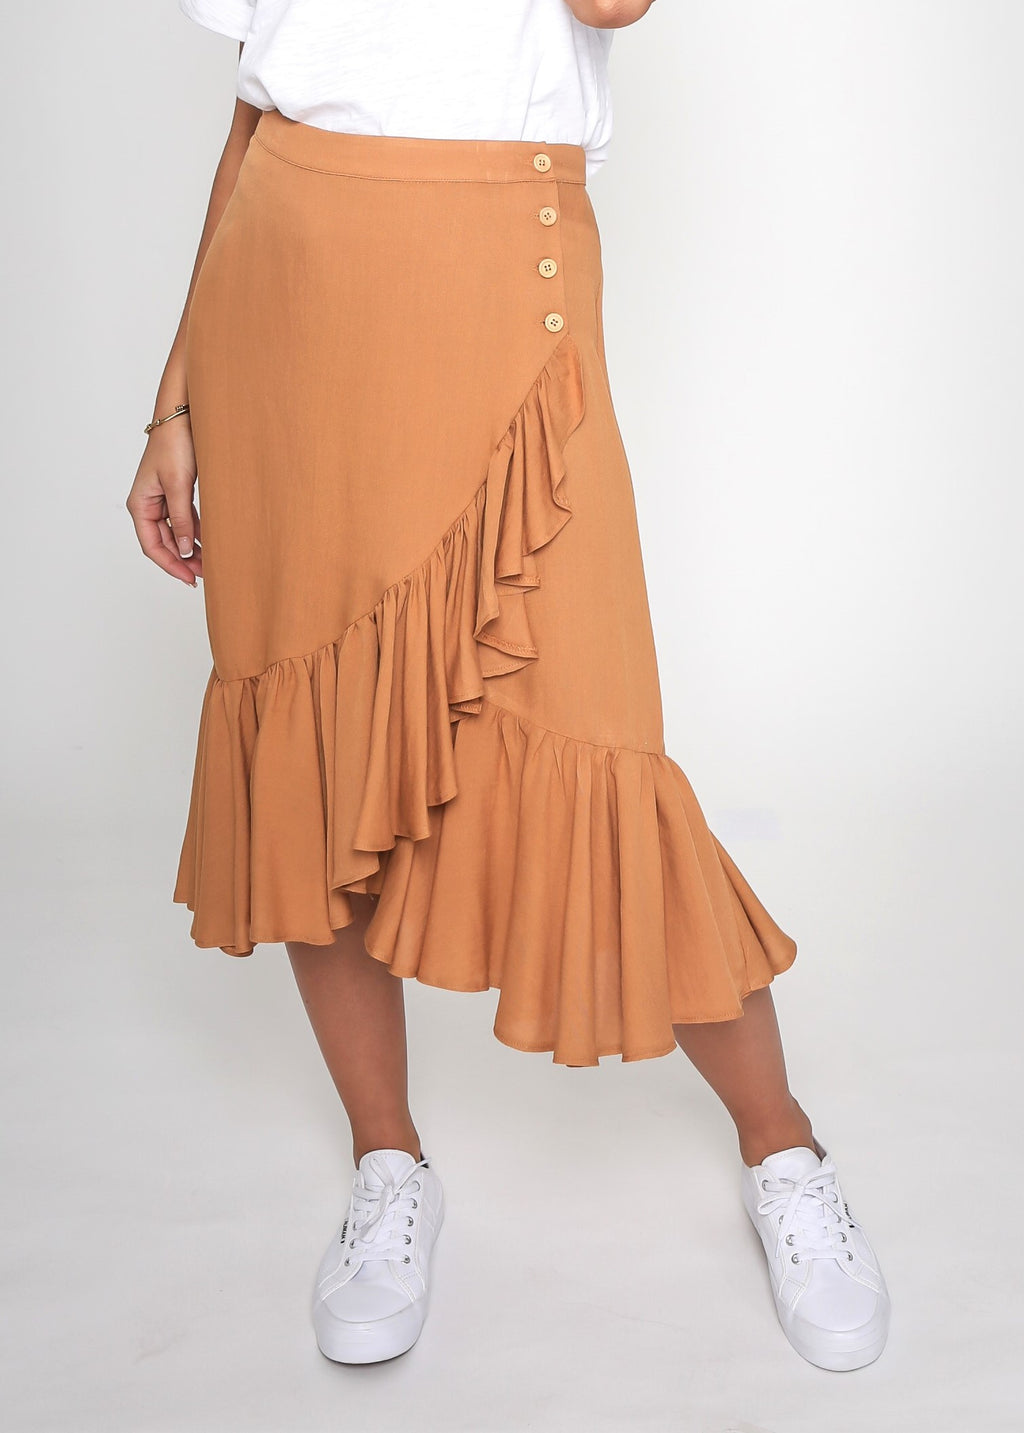 SHELLY SKIRT - MUSTARD